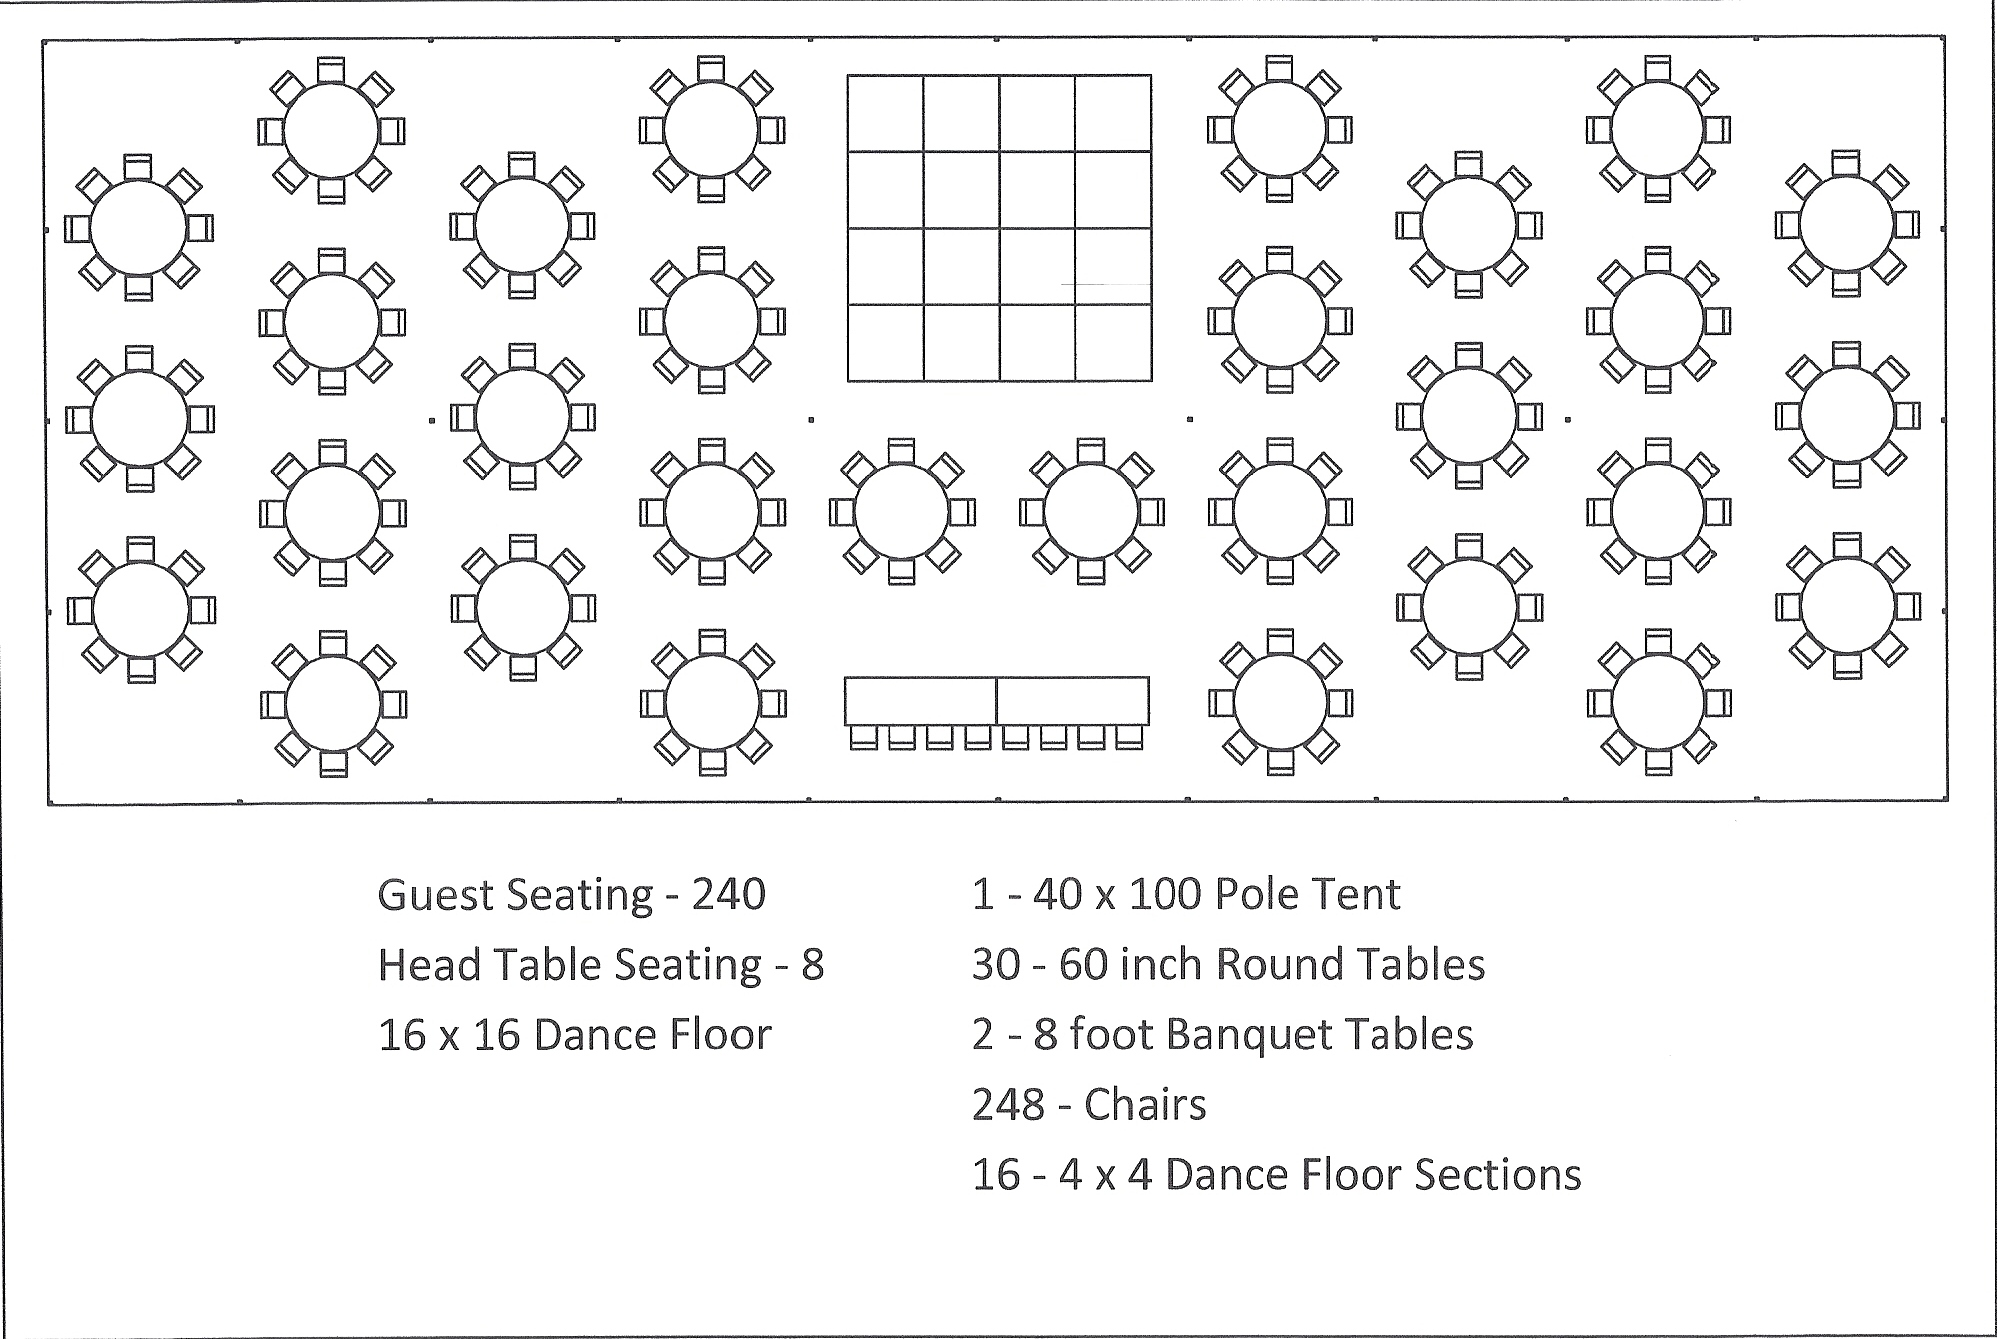 40 X 100 Pole Tent Seating Arrangements